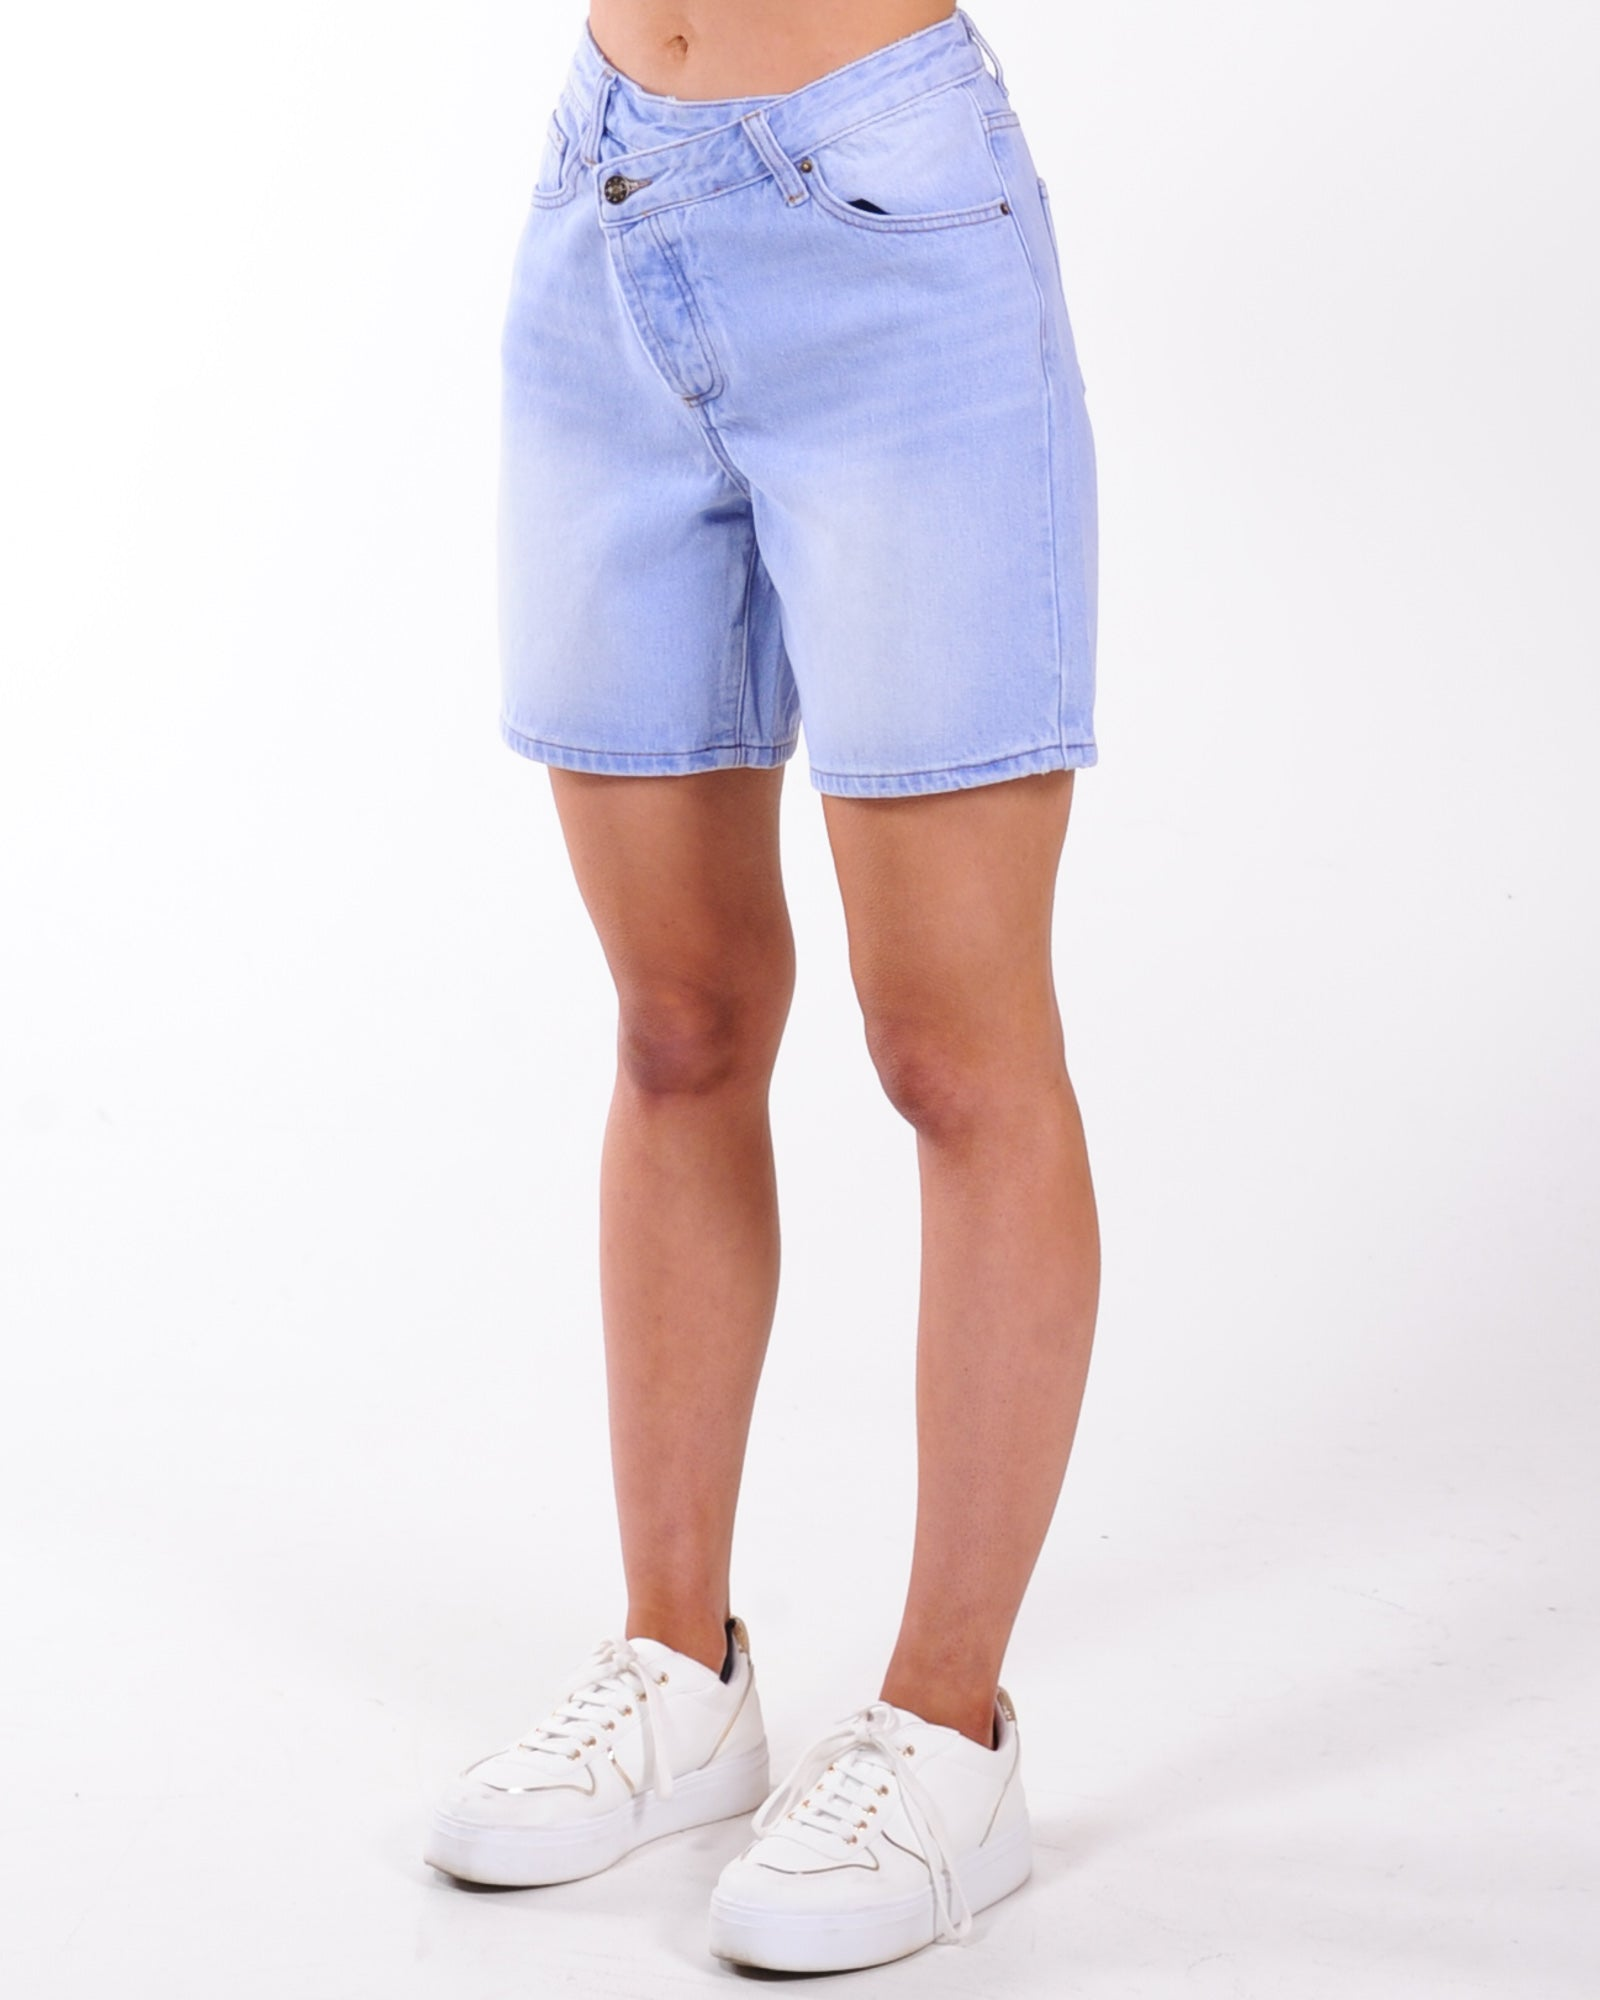 Lioness Low Rider Denim Short - Blue Denim